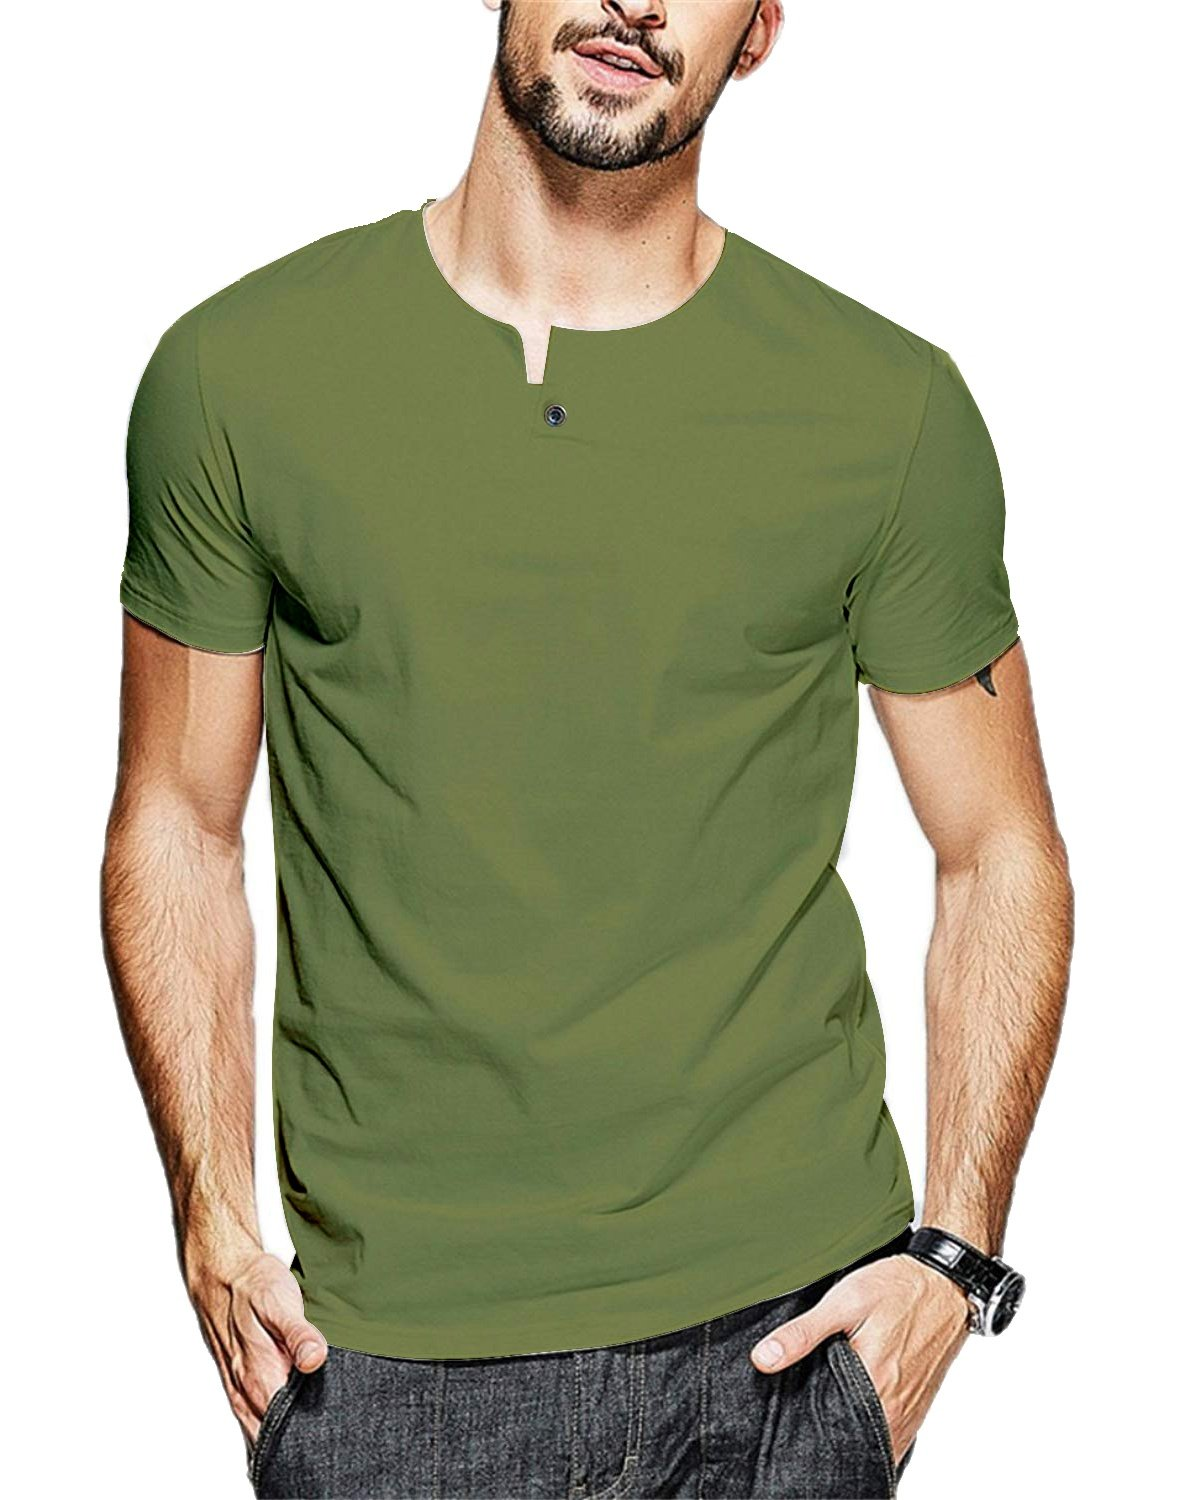 JNC 100% Cotton Mens Summer Casual Button Slim Fit Pure Color Short Sleeve Henley T-Shirts (Medium, Army Green)